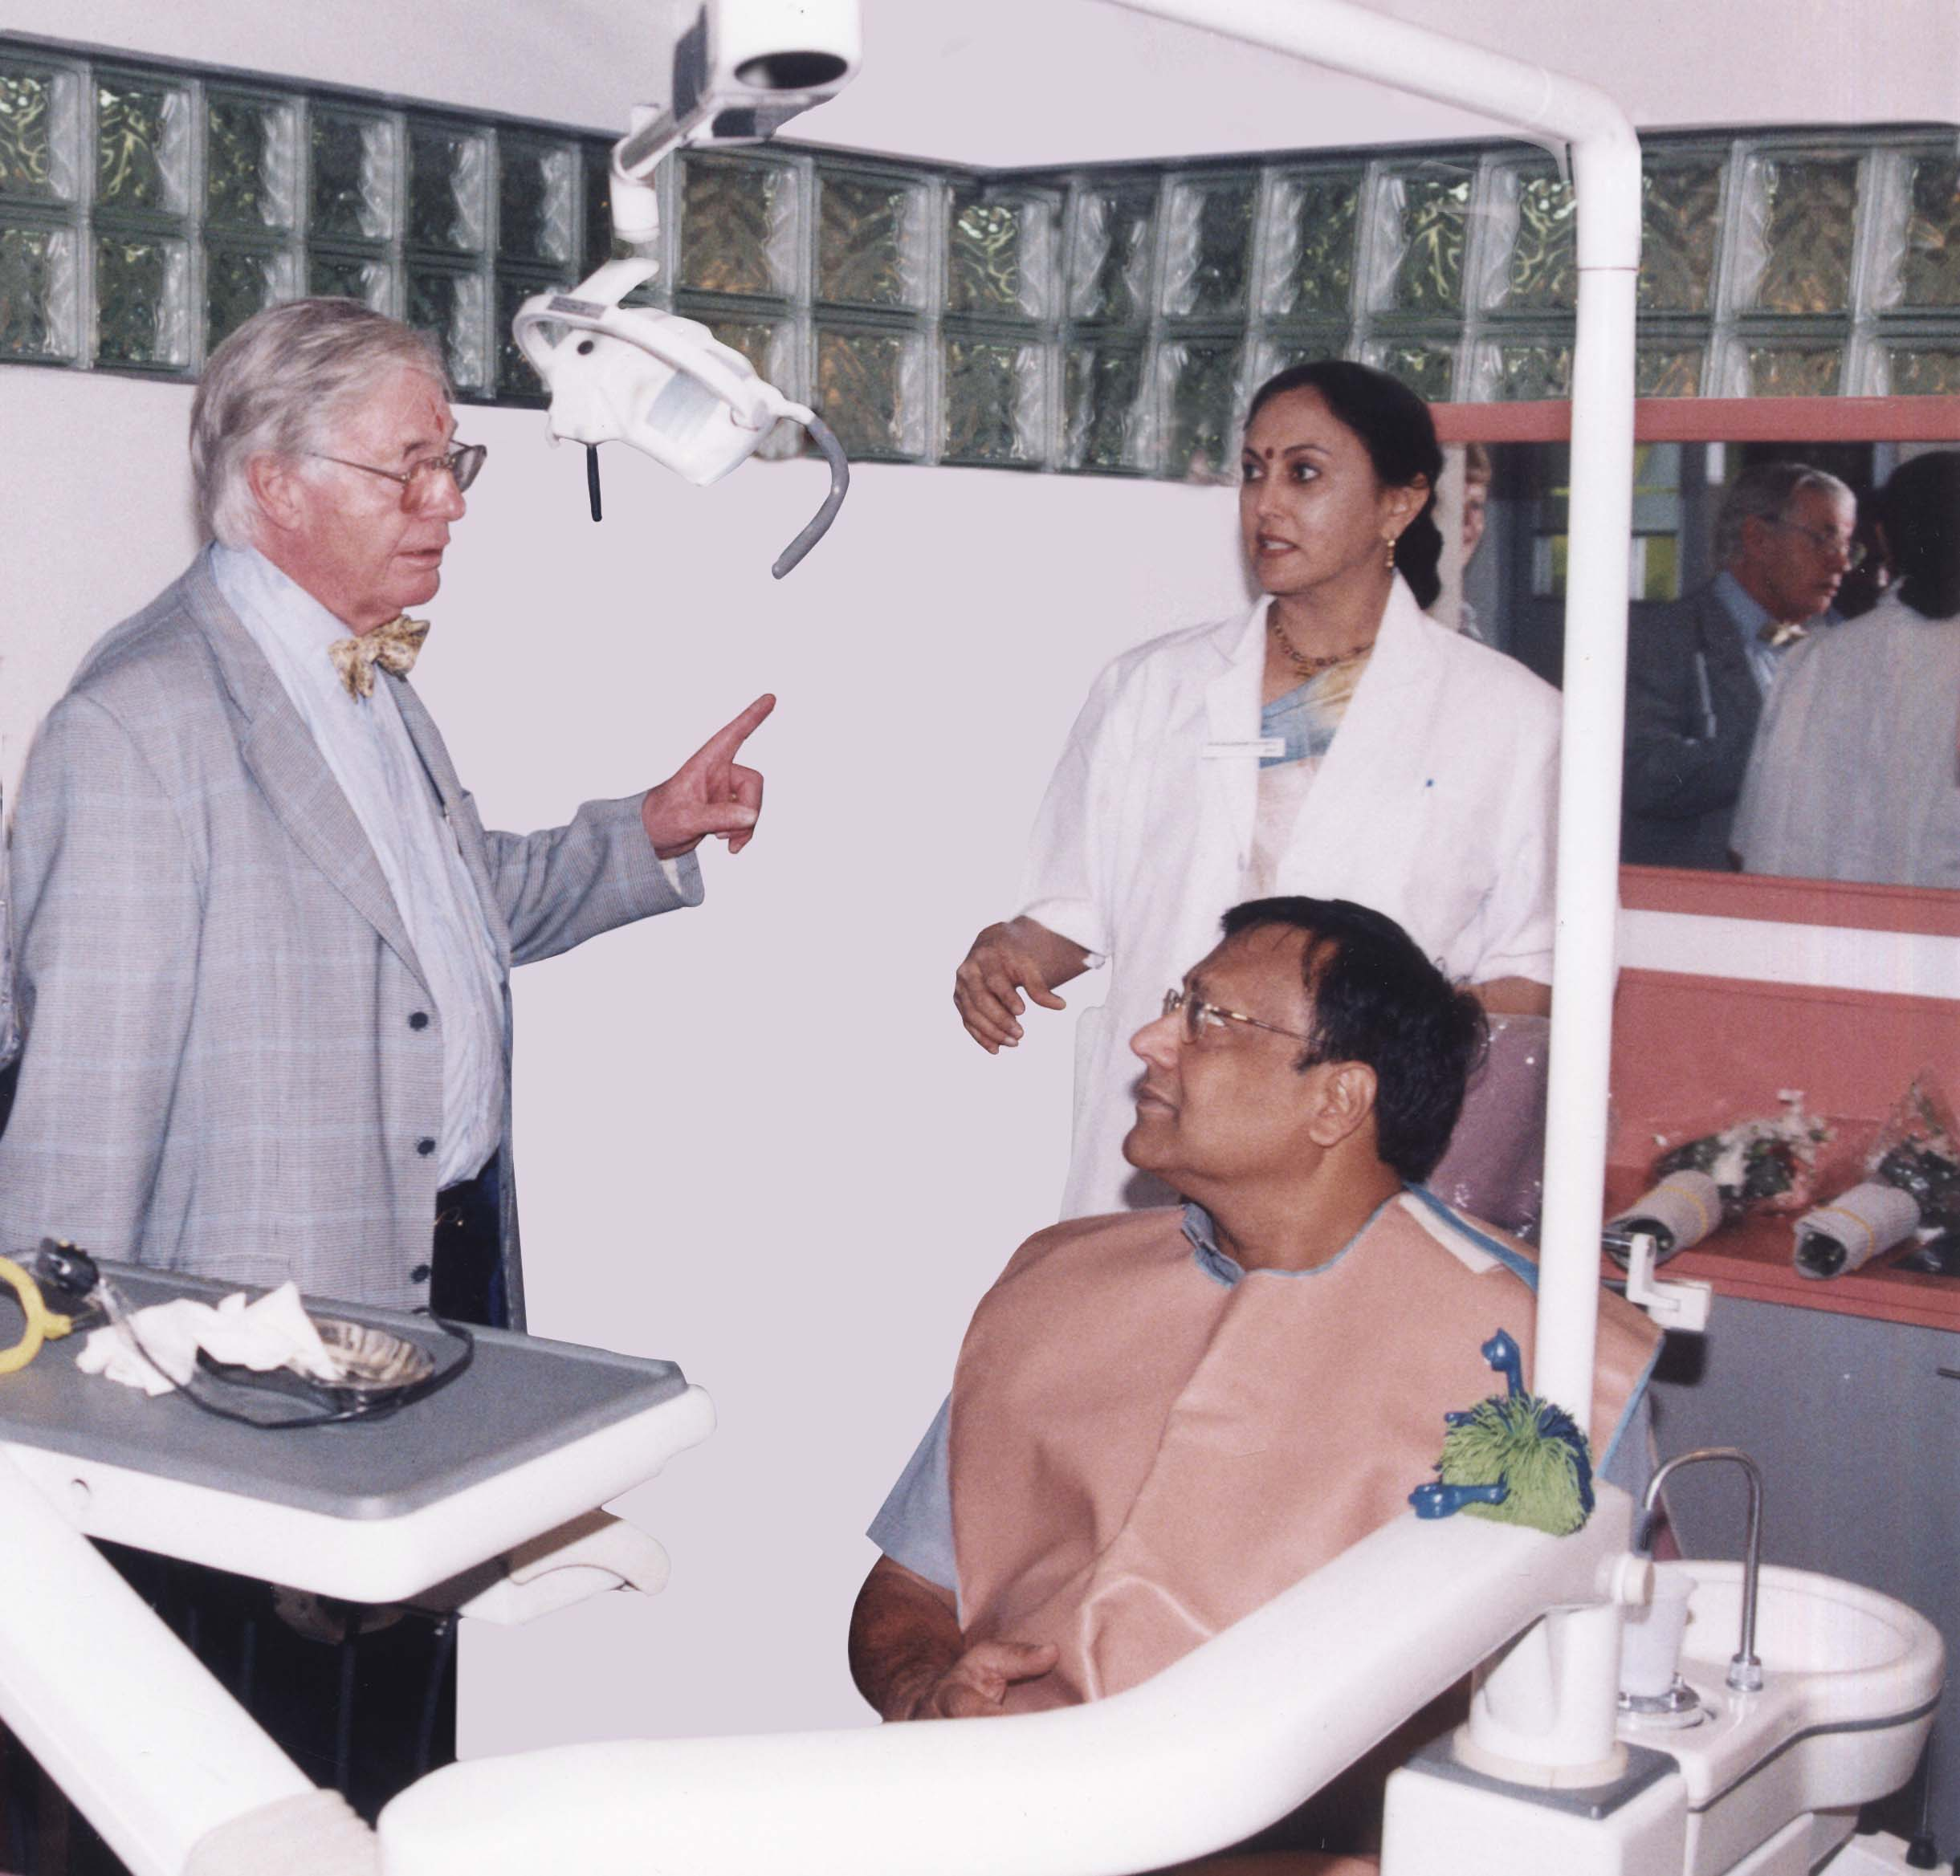 Dr. Per-Ingvar Branemark, the pioneer of implant dentistry, visits Acharya Dental in the year 2002